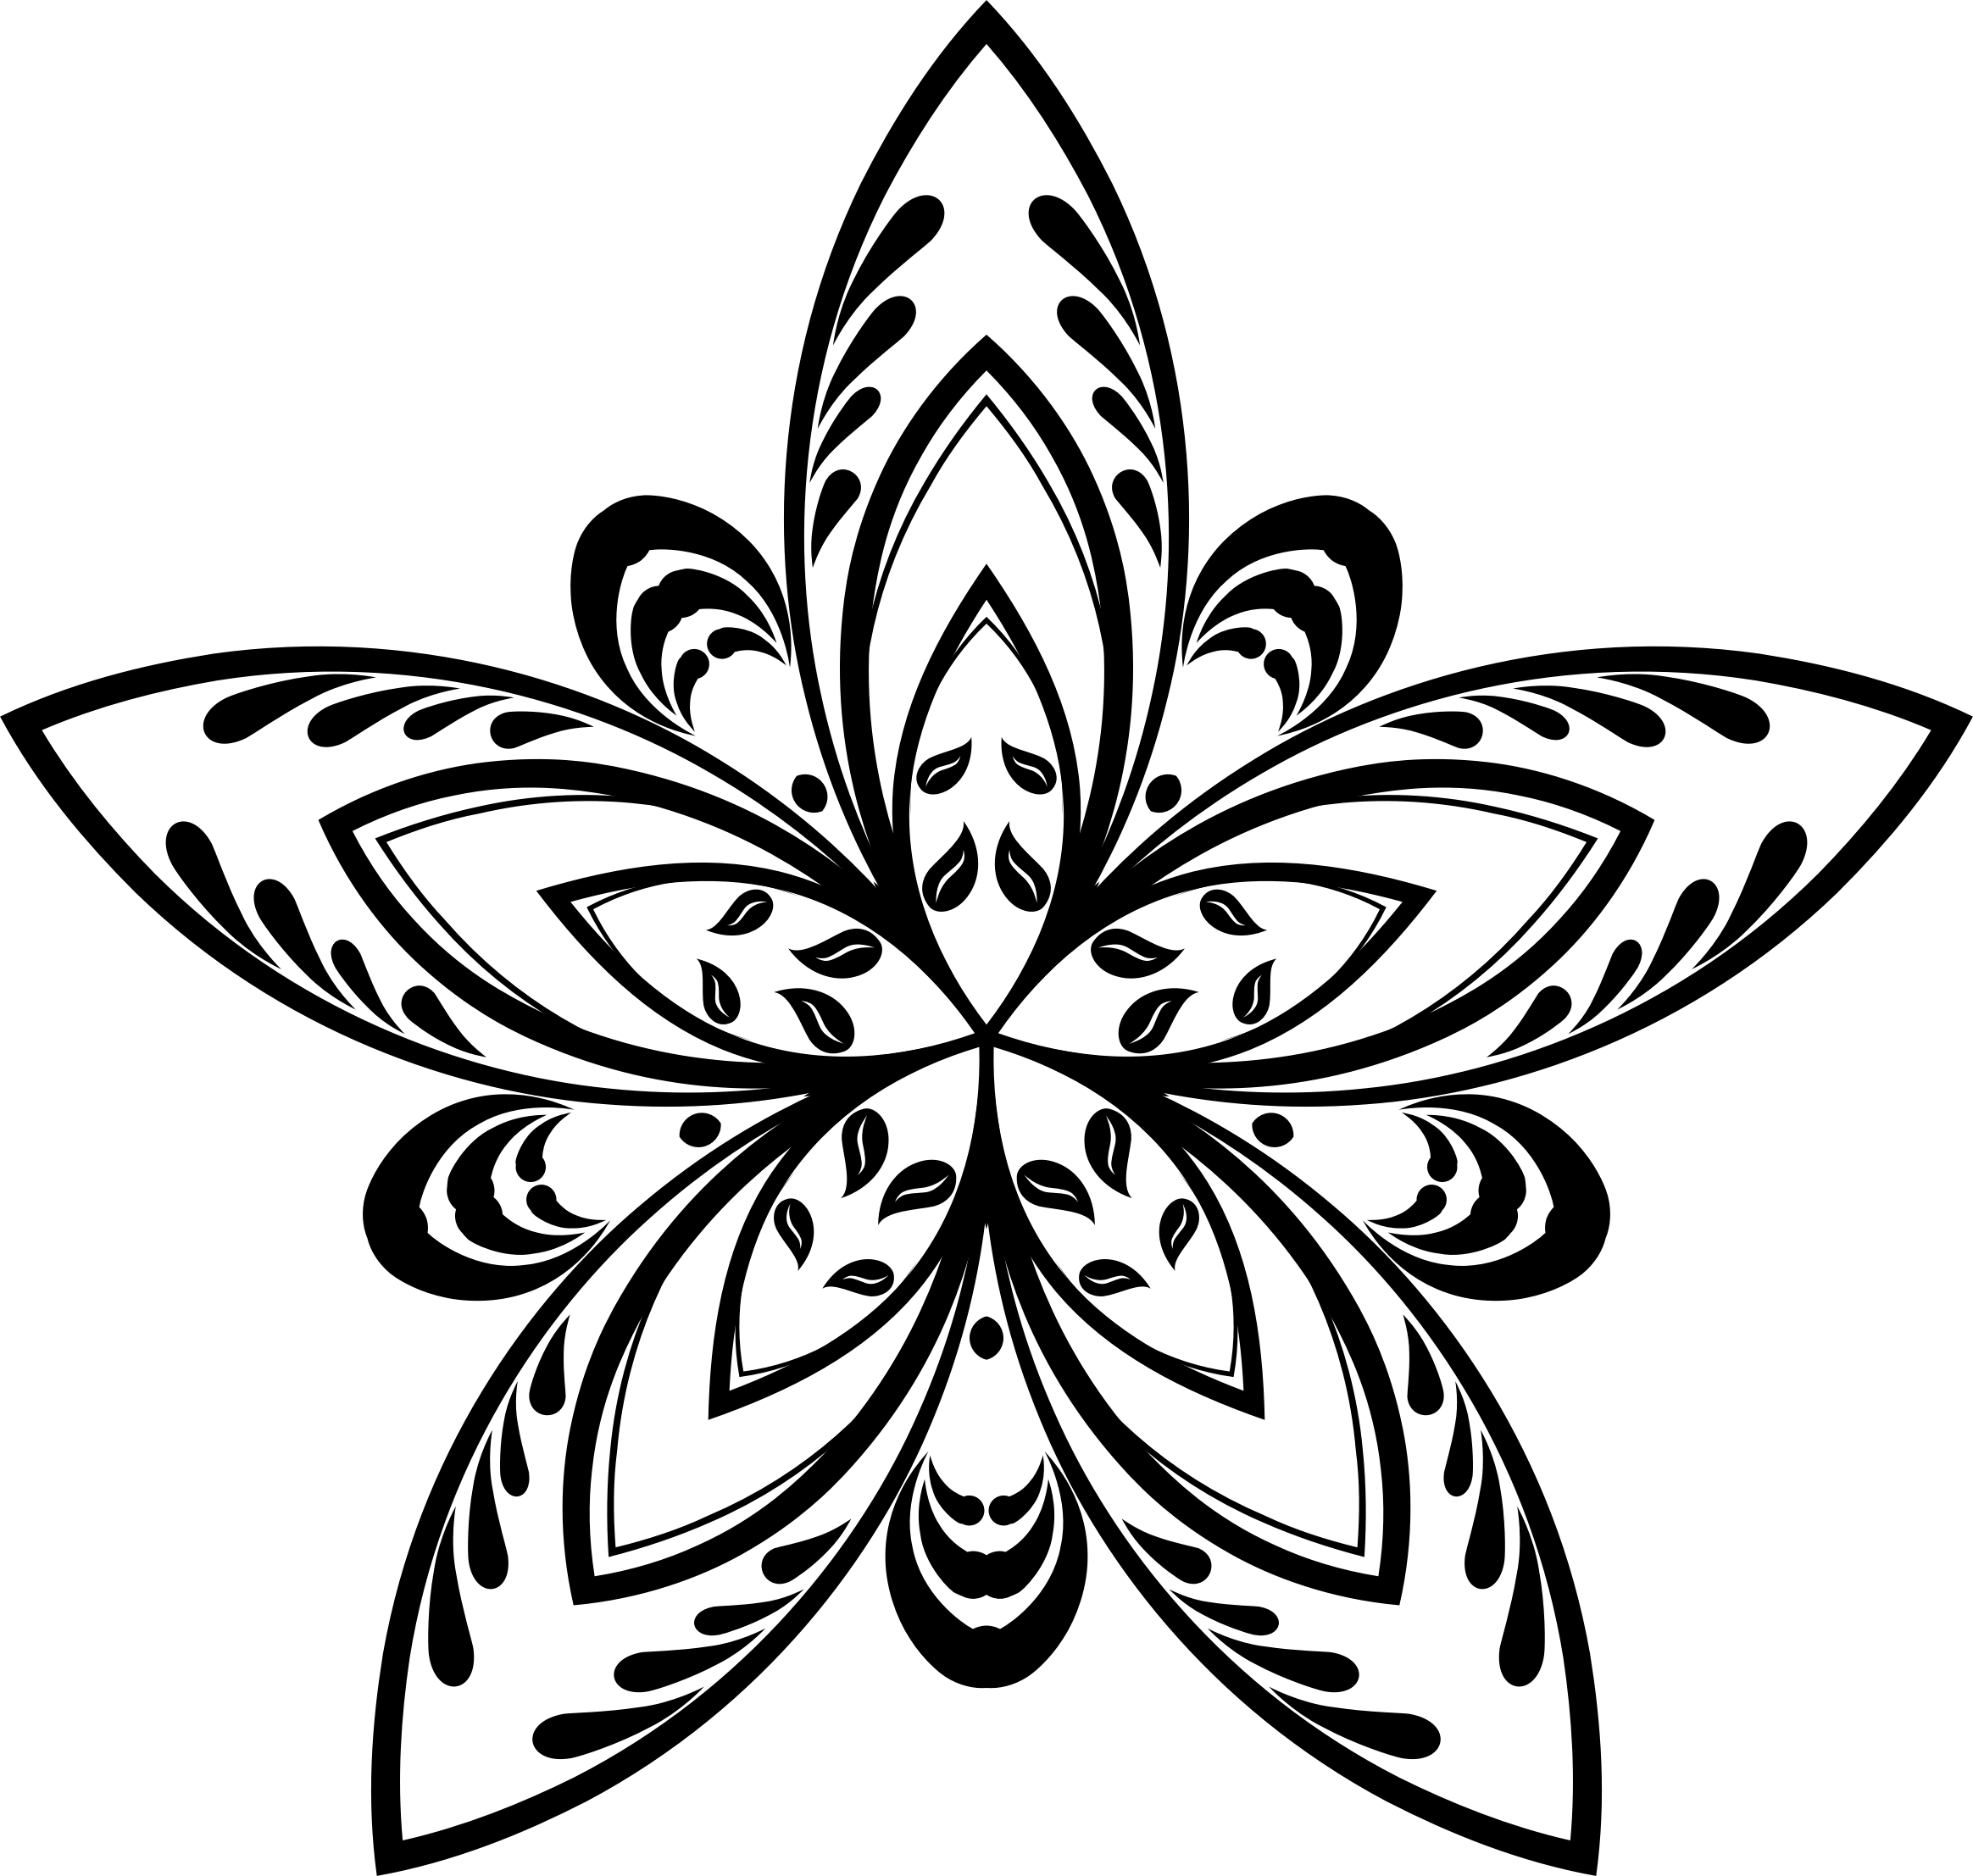 Drawn star clipart png picture free stock Flower Star Silhouette Icons PNG - Free PNG and Icons Downloads picture free stock